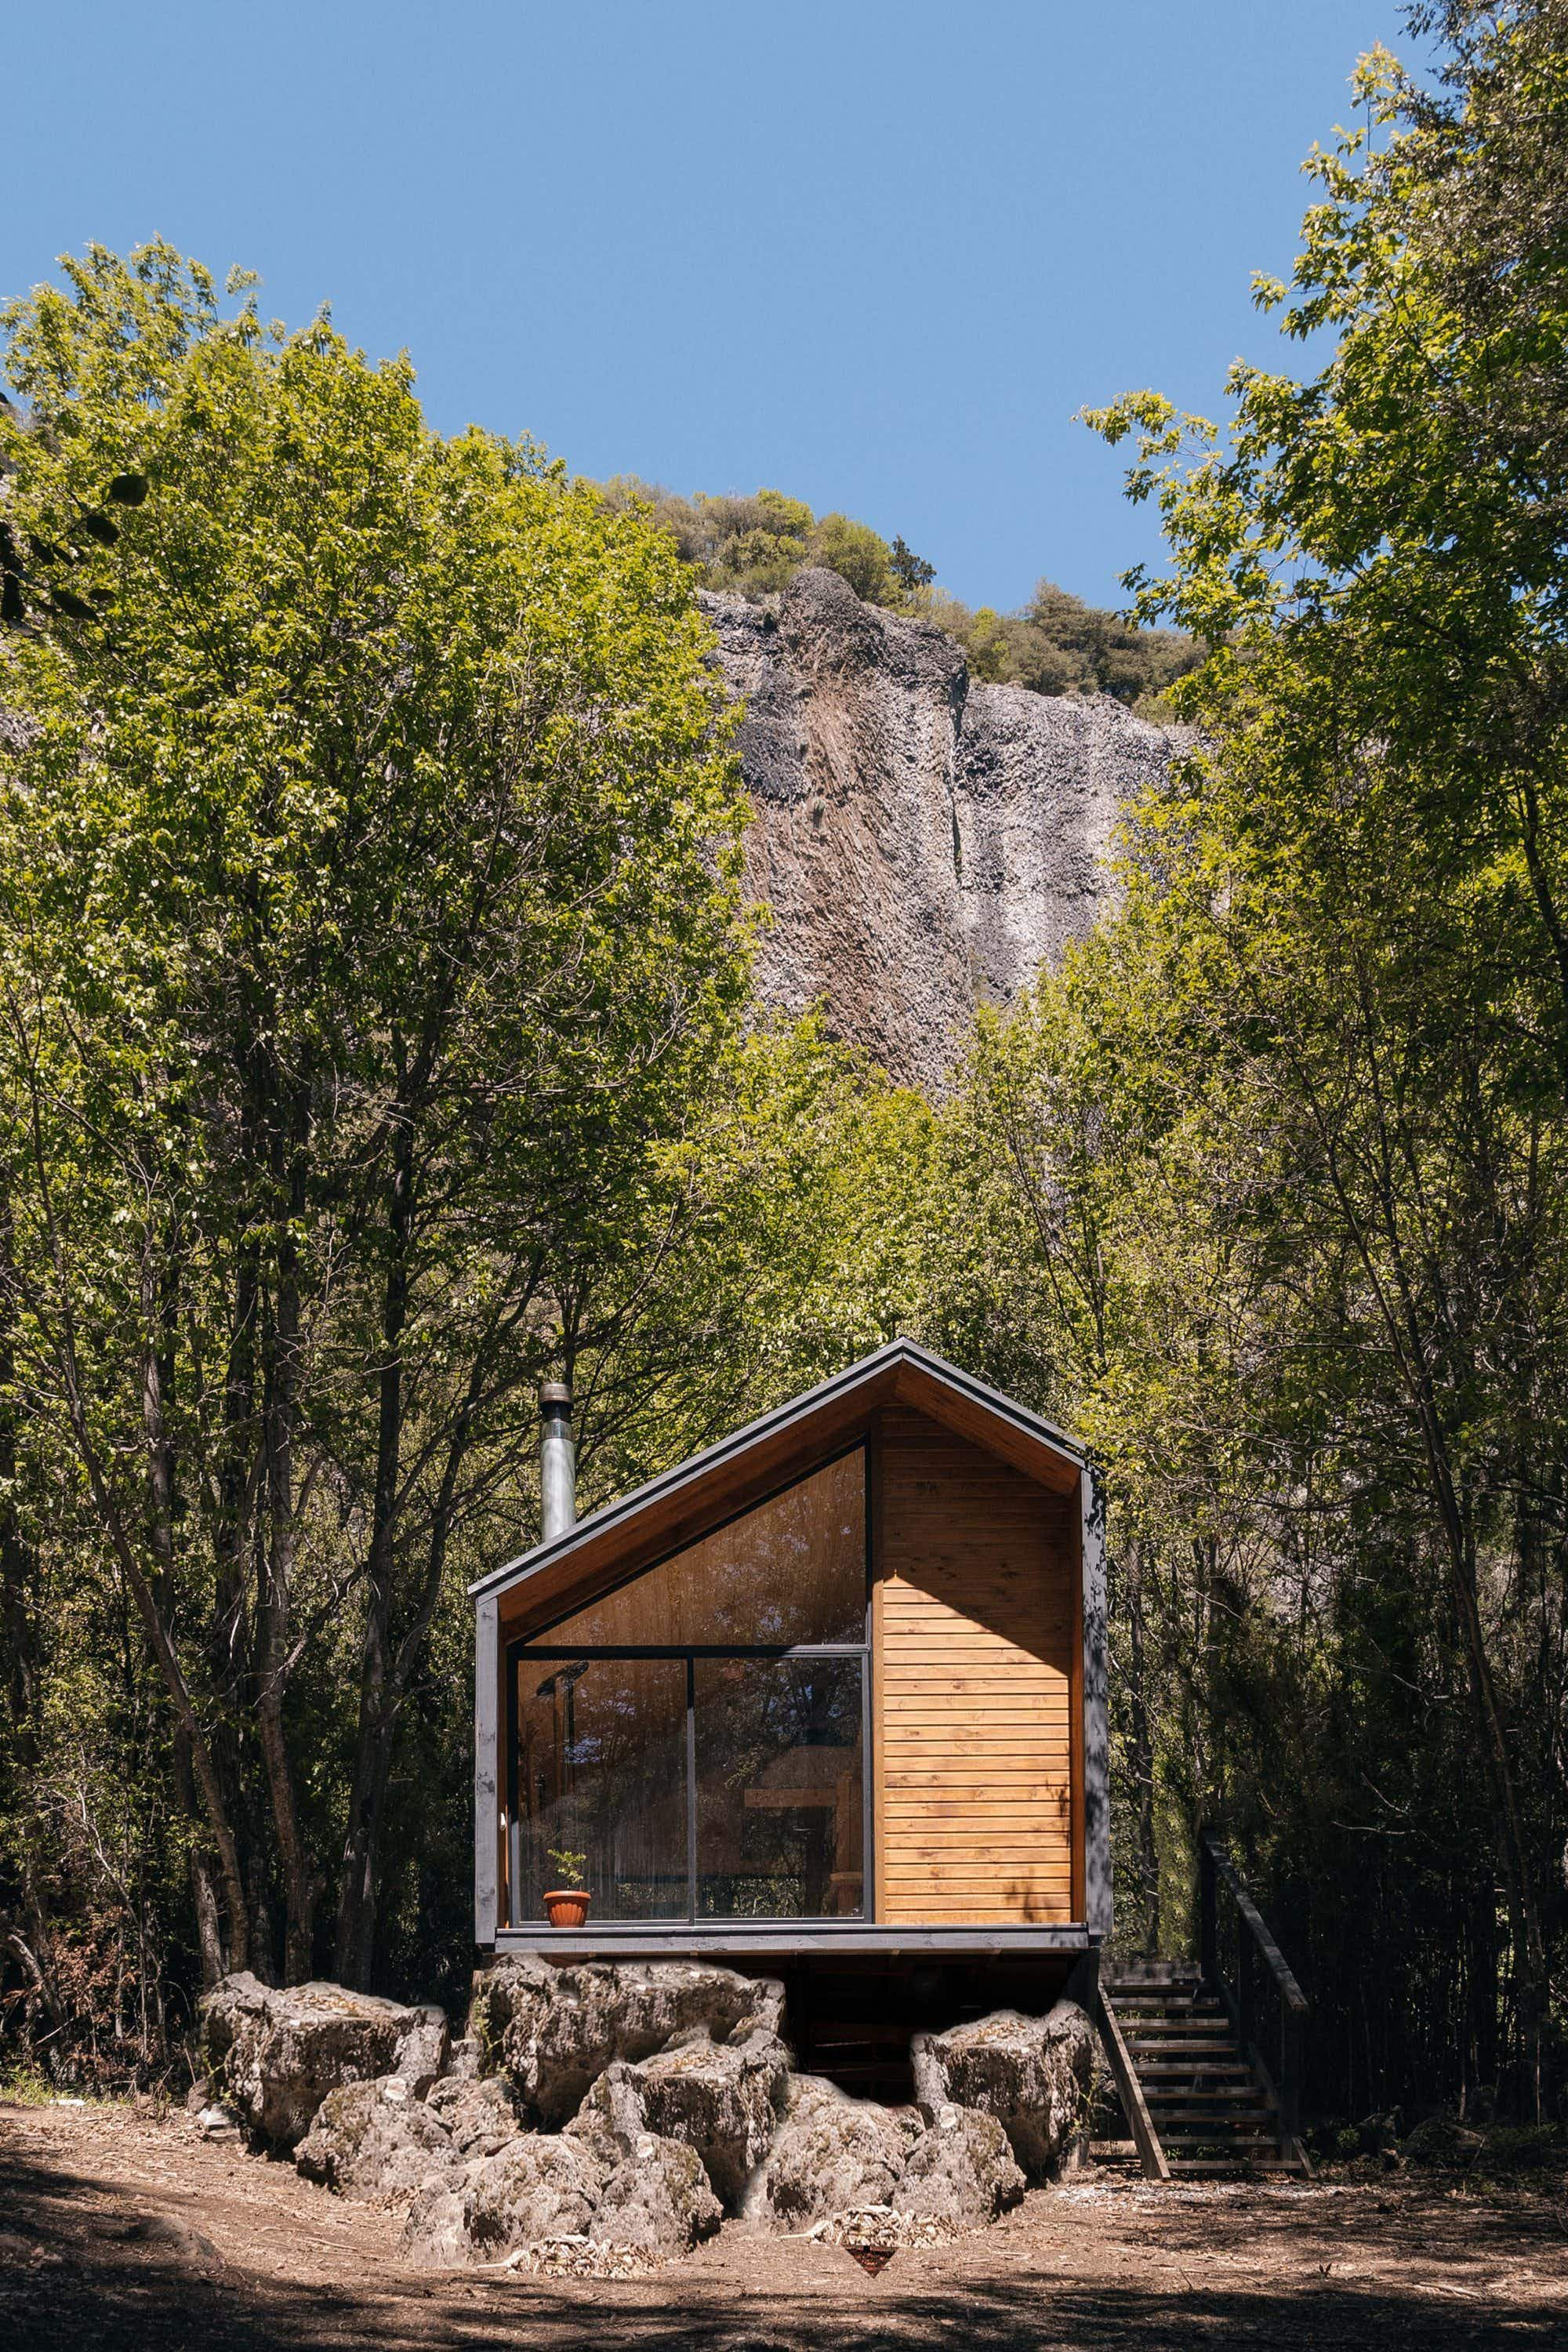 Check out this wooden refuge deep in the Chilean mountains